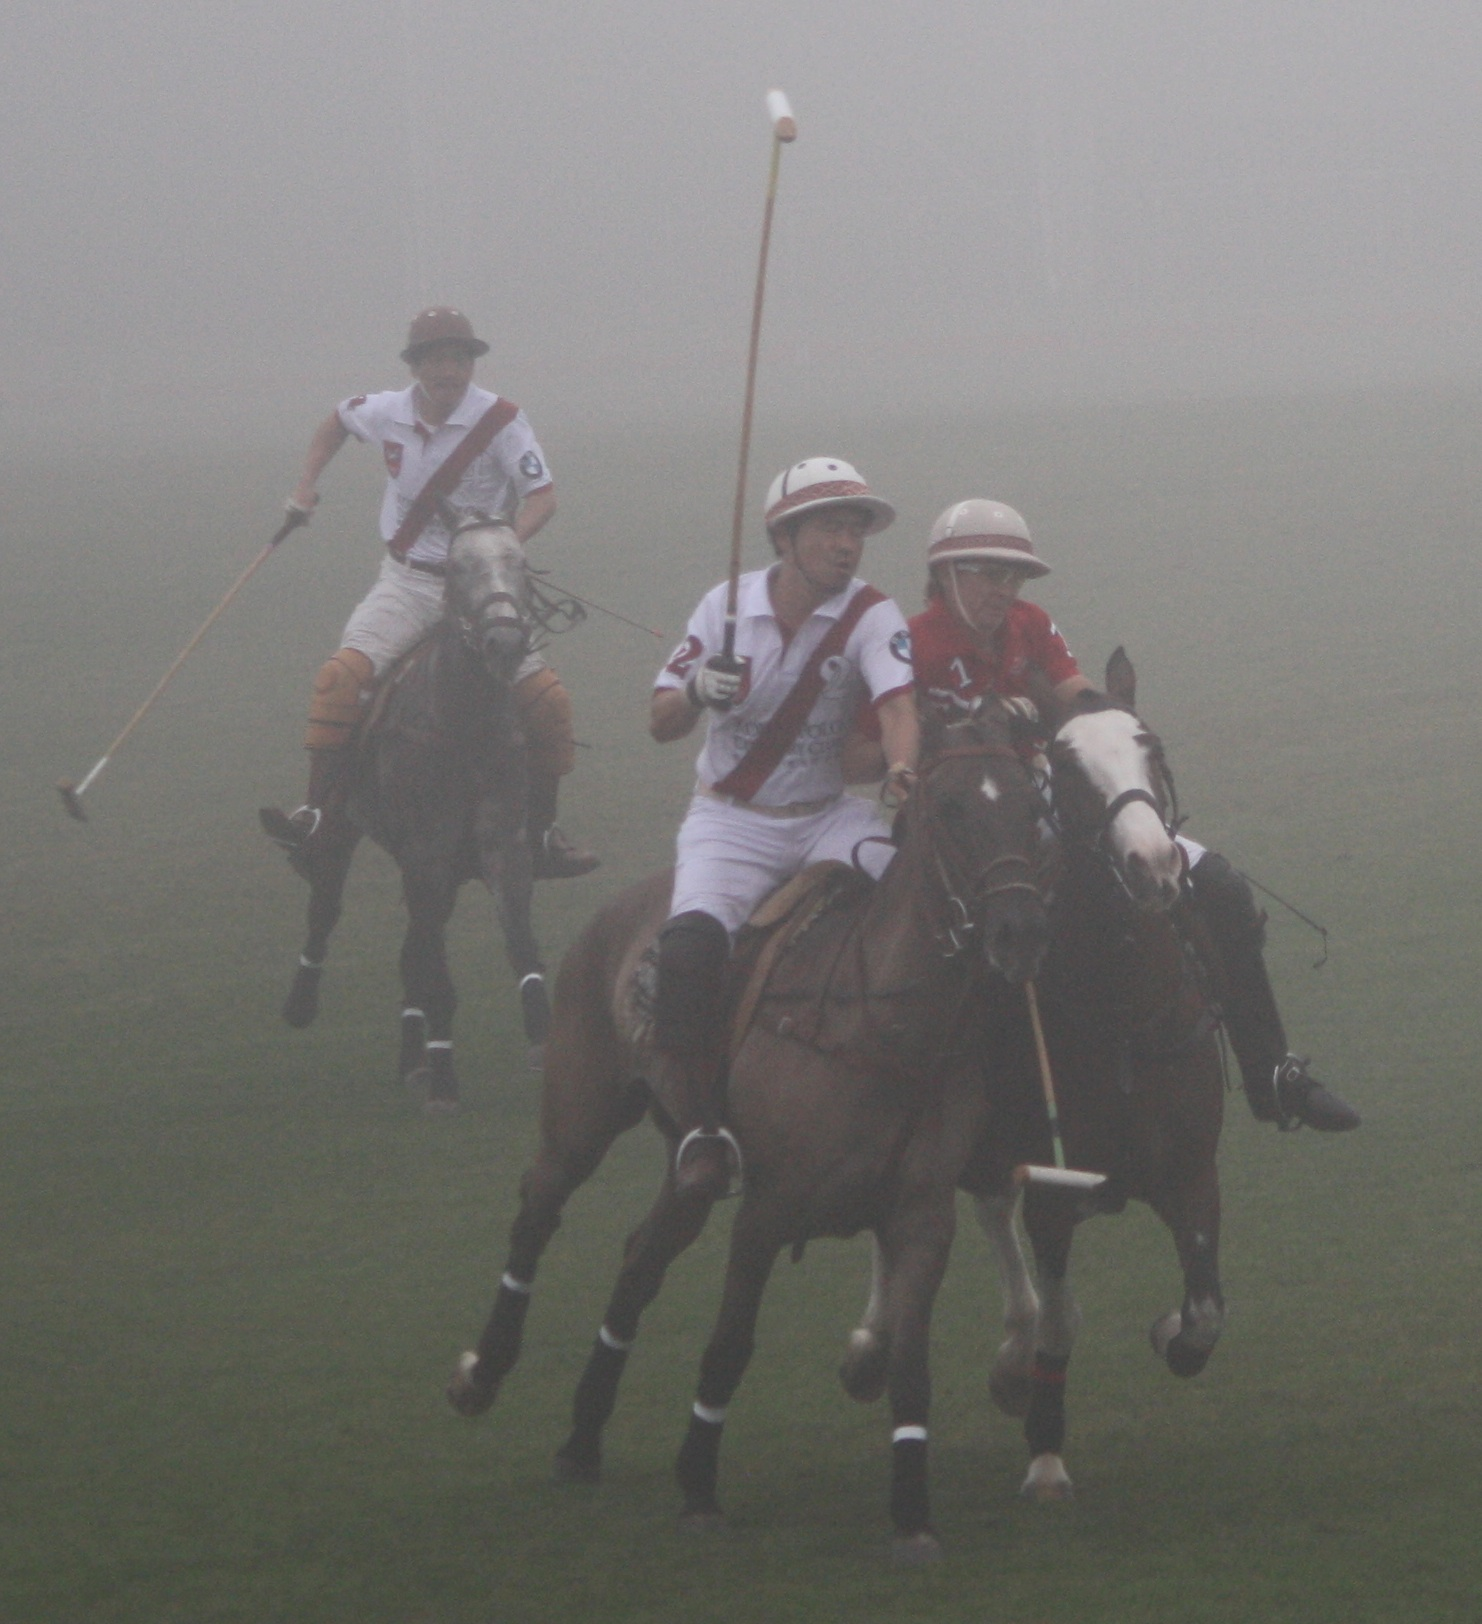 Singapore Polo Club team wins BMW Cup 2011 at Korea Polo Club